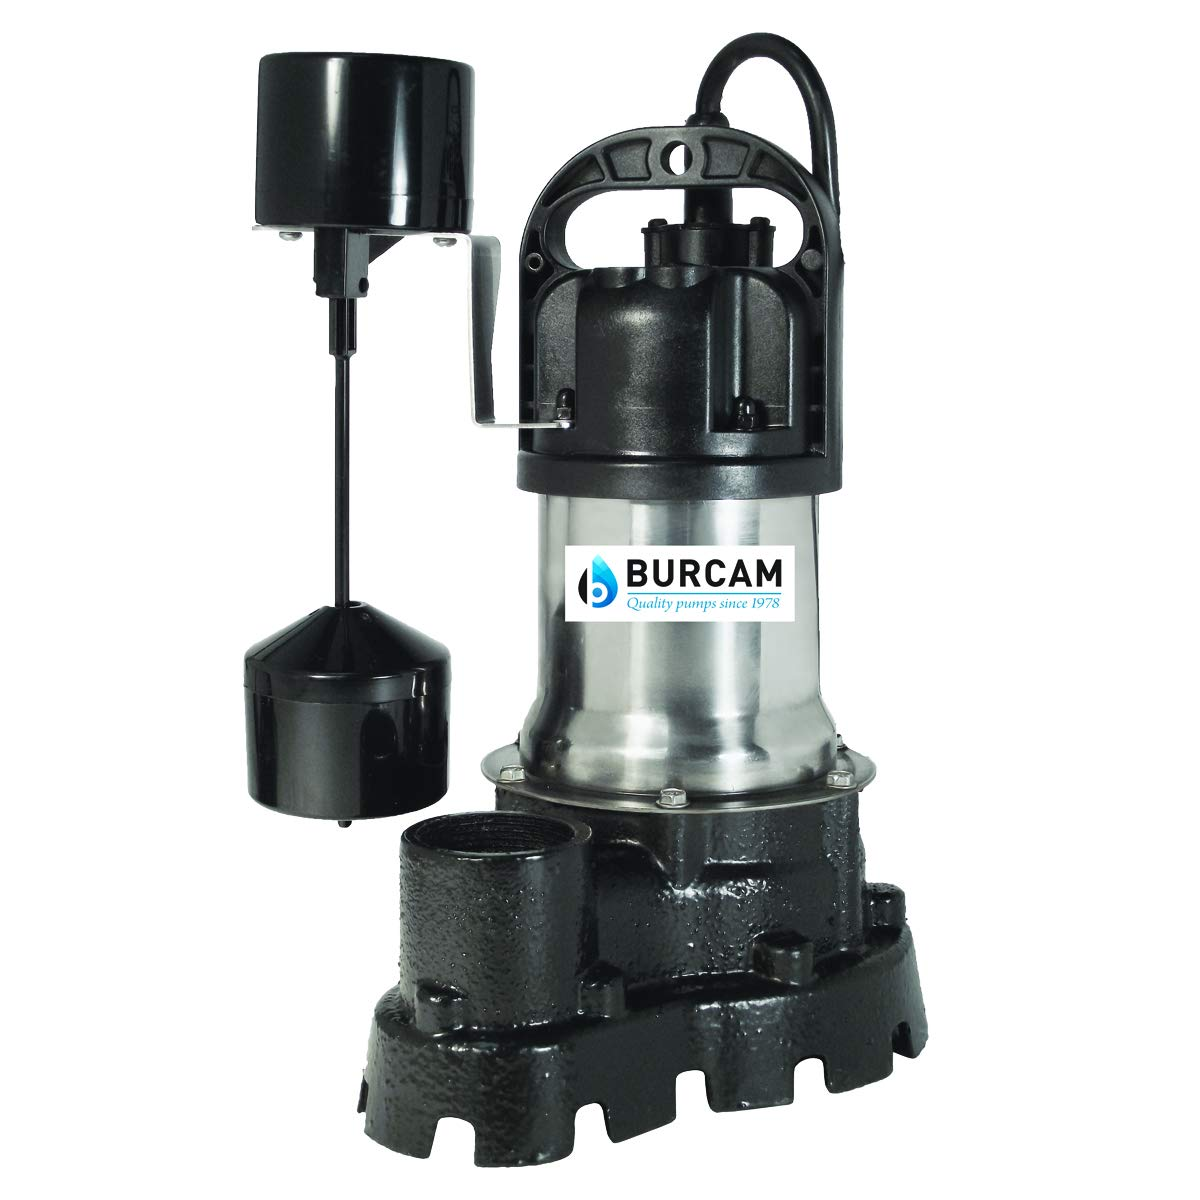 BURCAM 300526 1/2 HP Stainless Steel and Cast Iron Submersible Sump Effluent Pump